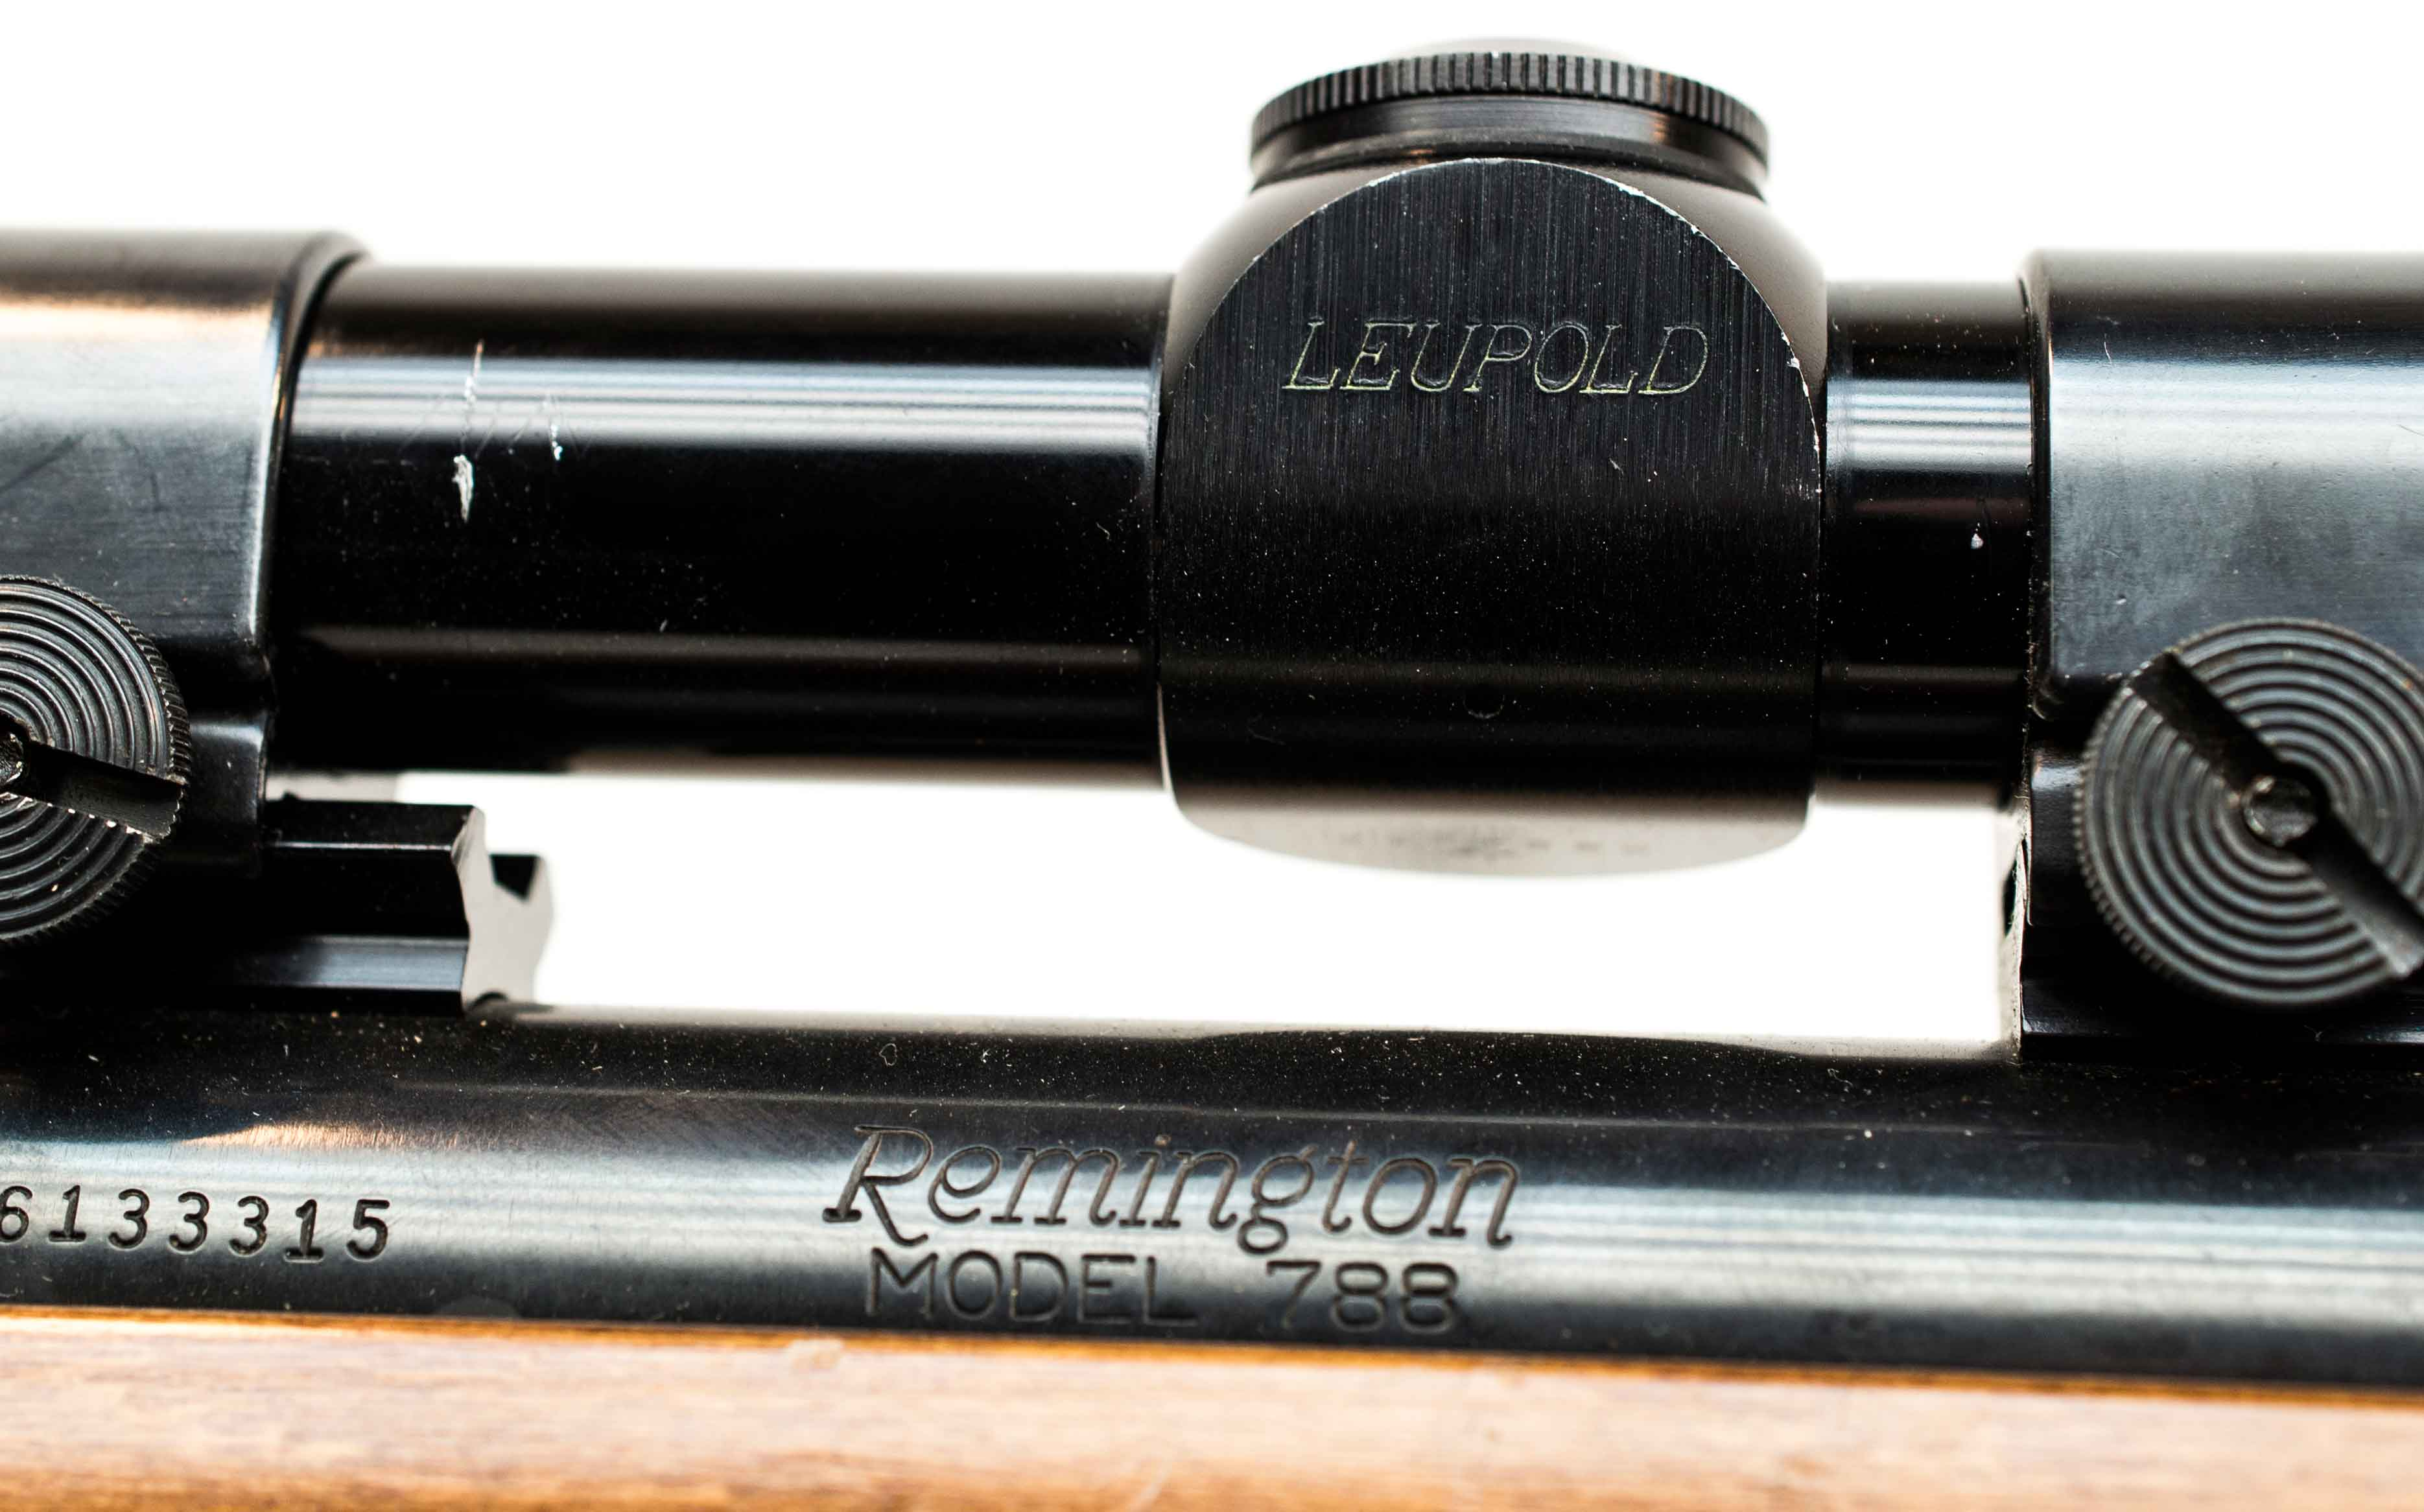 REMINGTON 788 308WIN (Auction ID: 5595667, End Time : Oct